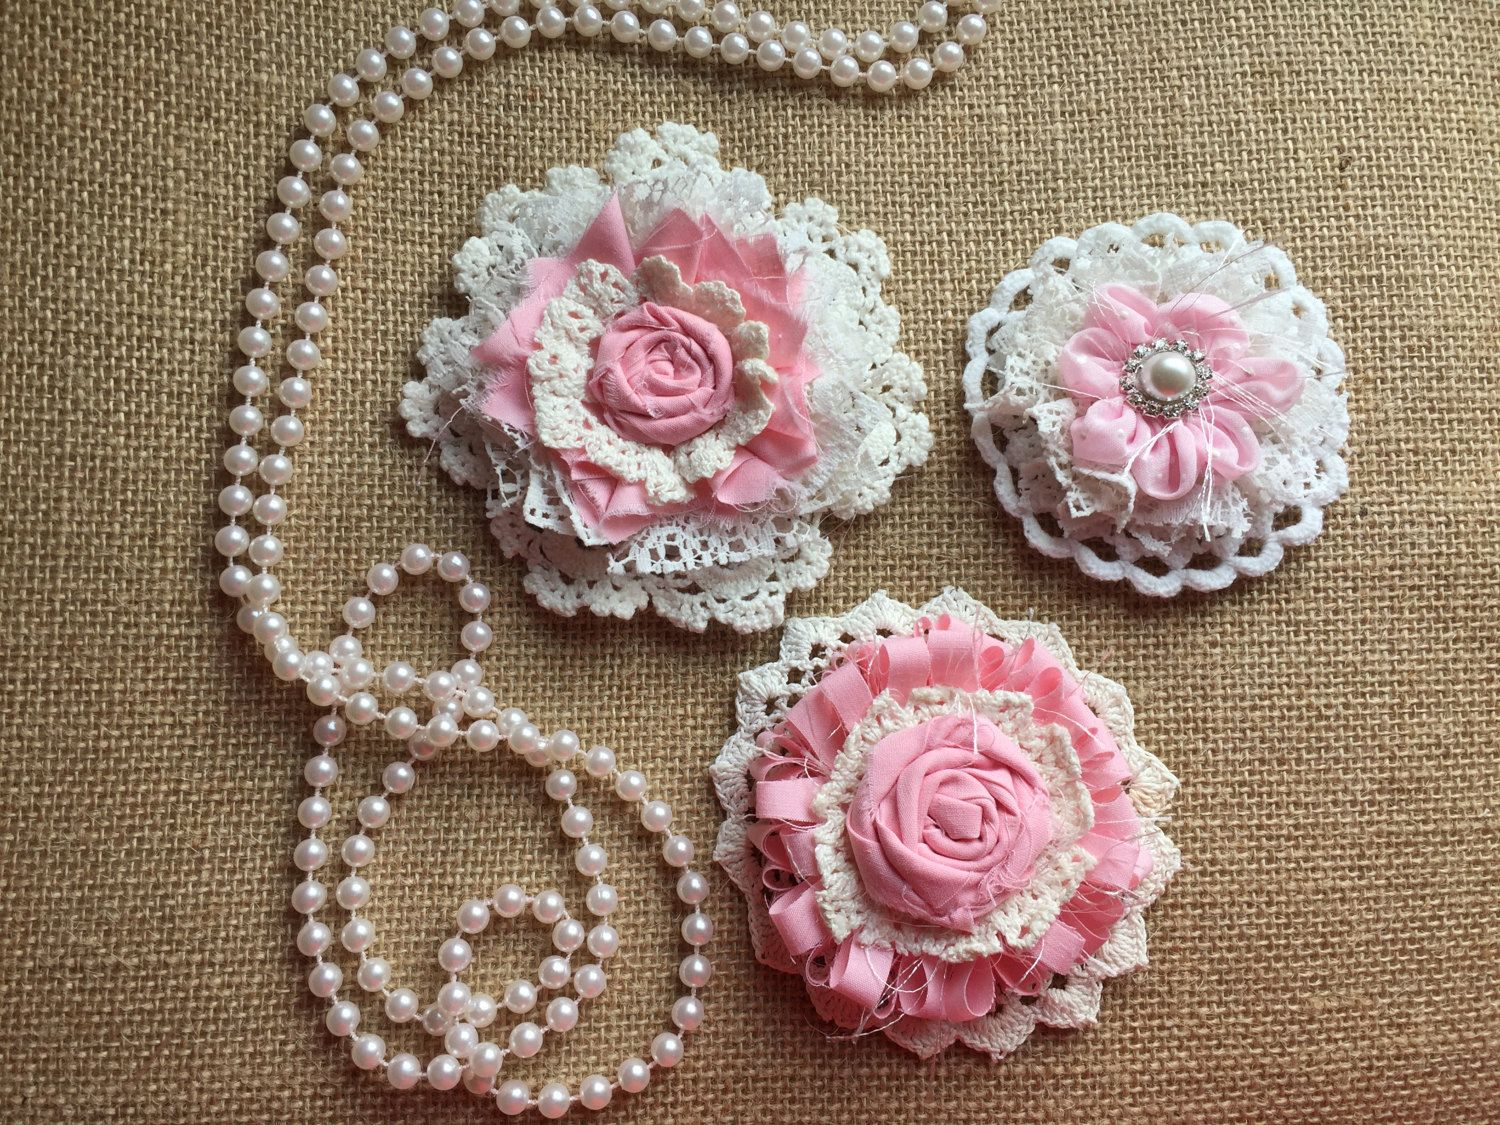 Shabby Chic Fabric Flowerrustic Chicgirl Room Decor Pink And